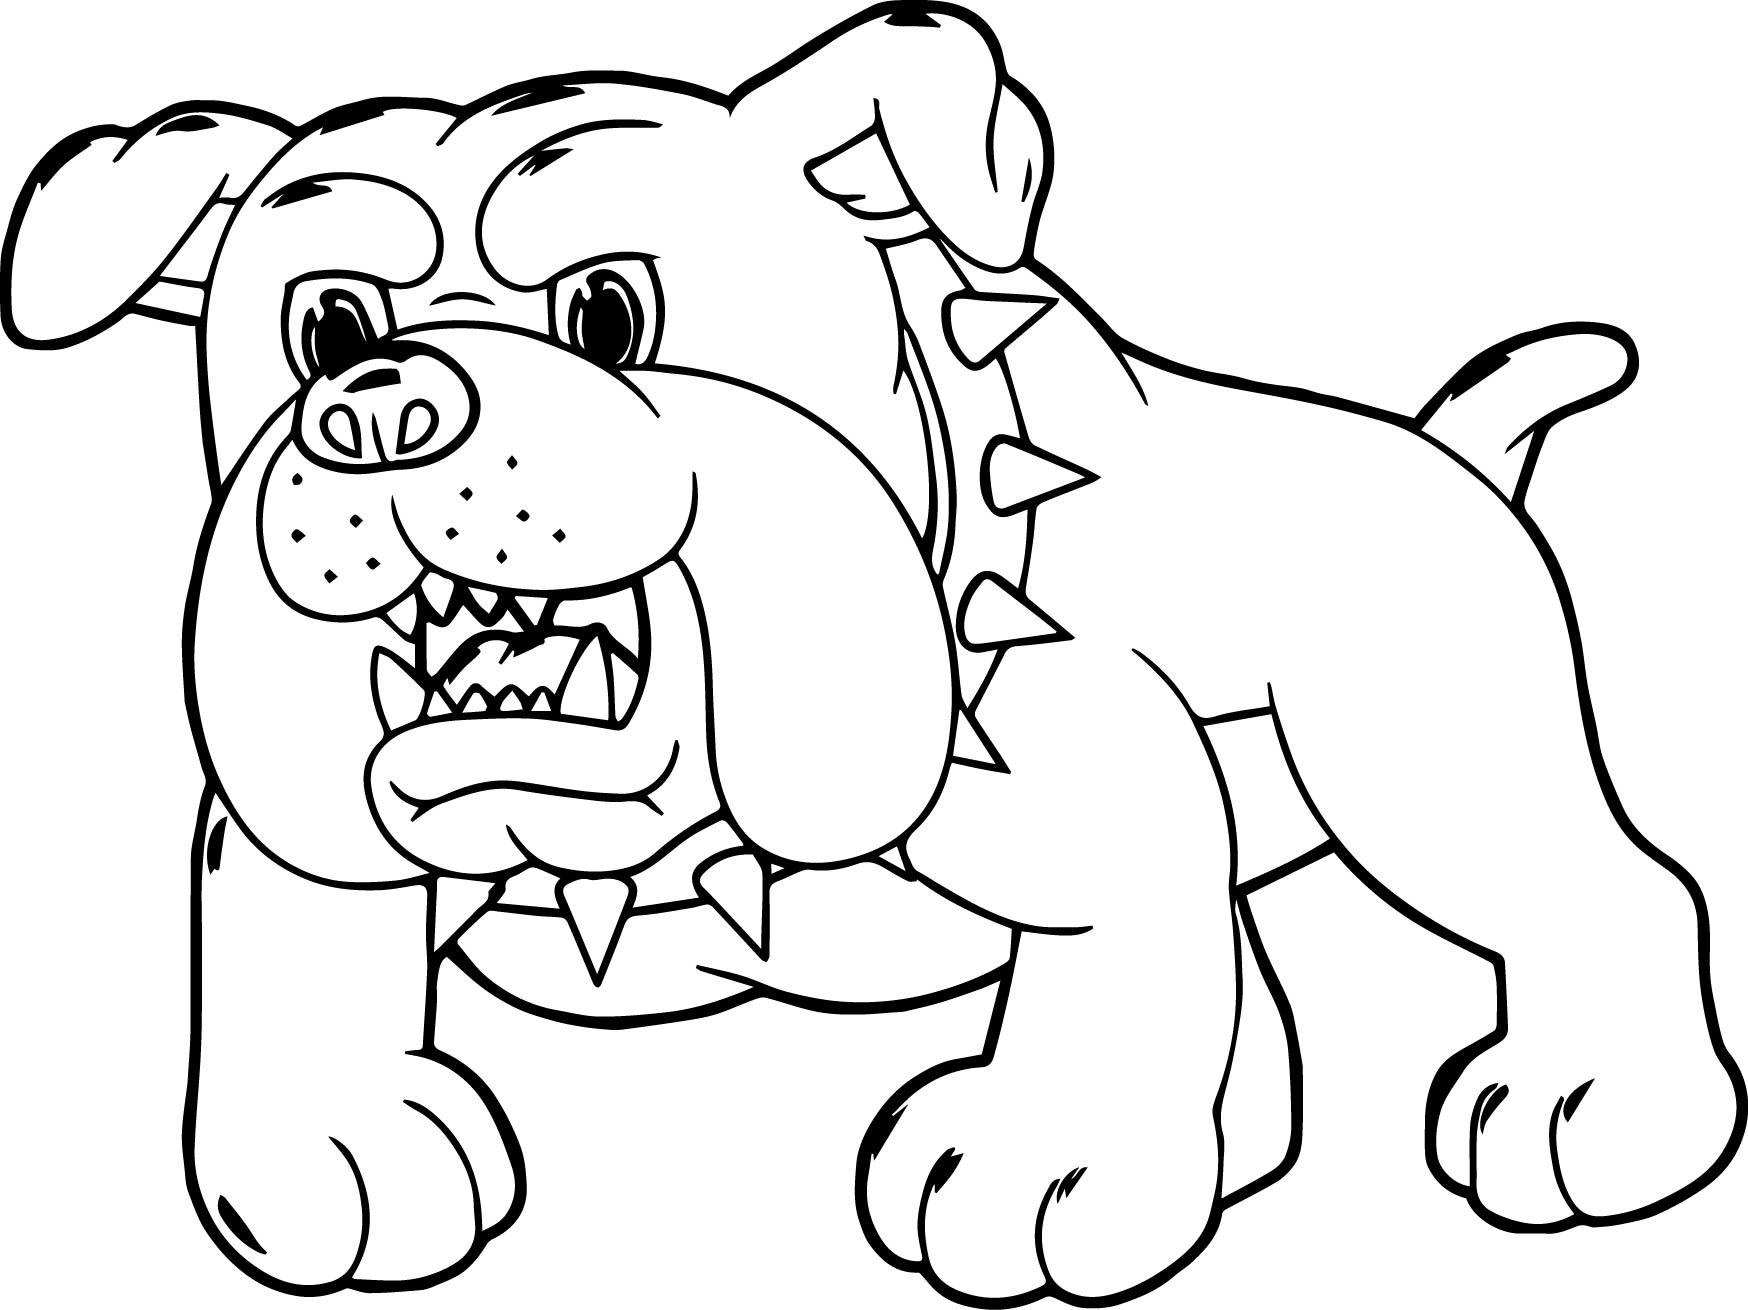 Miniature Pinscher Coloring Pages At Getdrawings